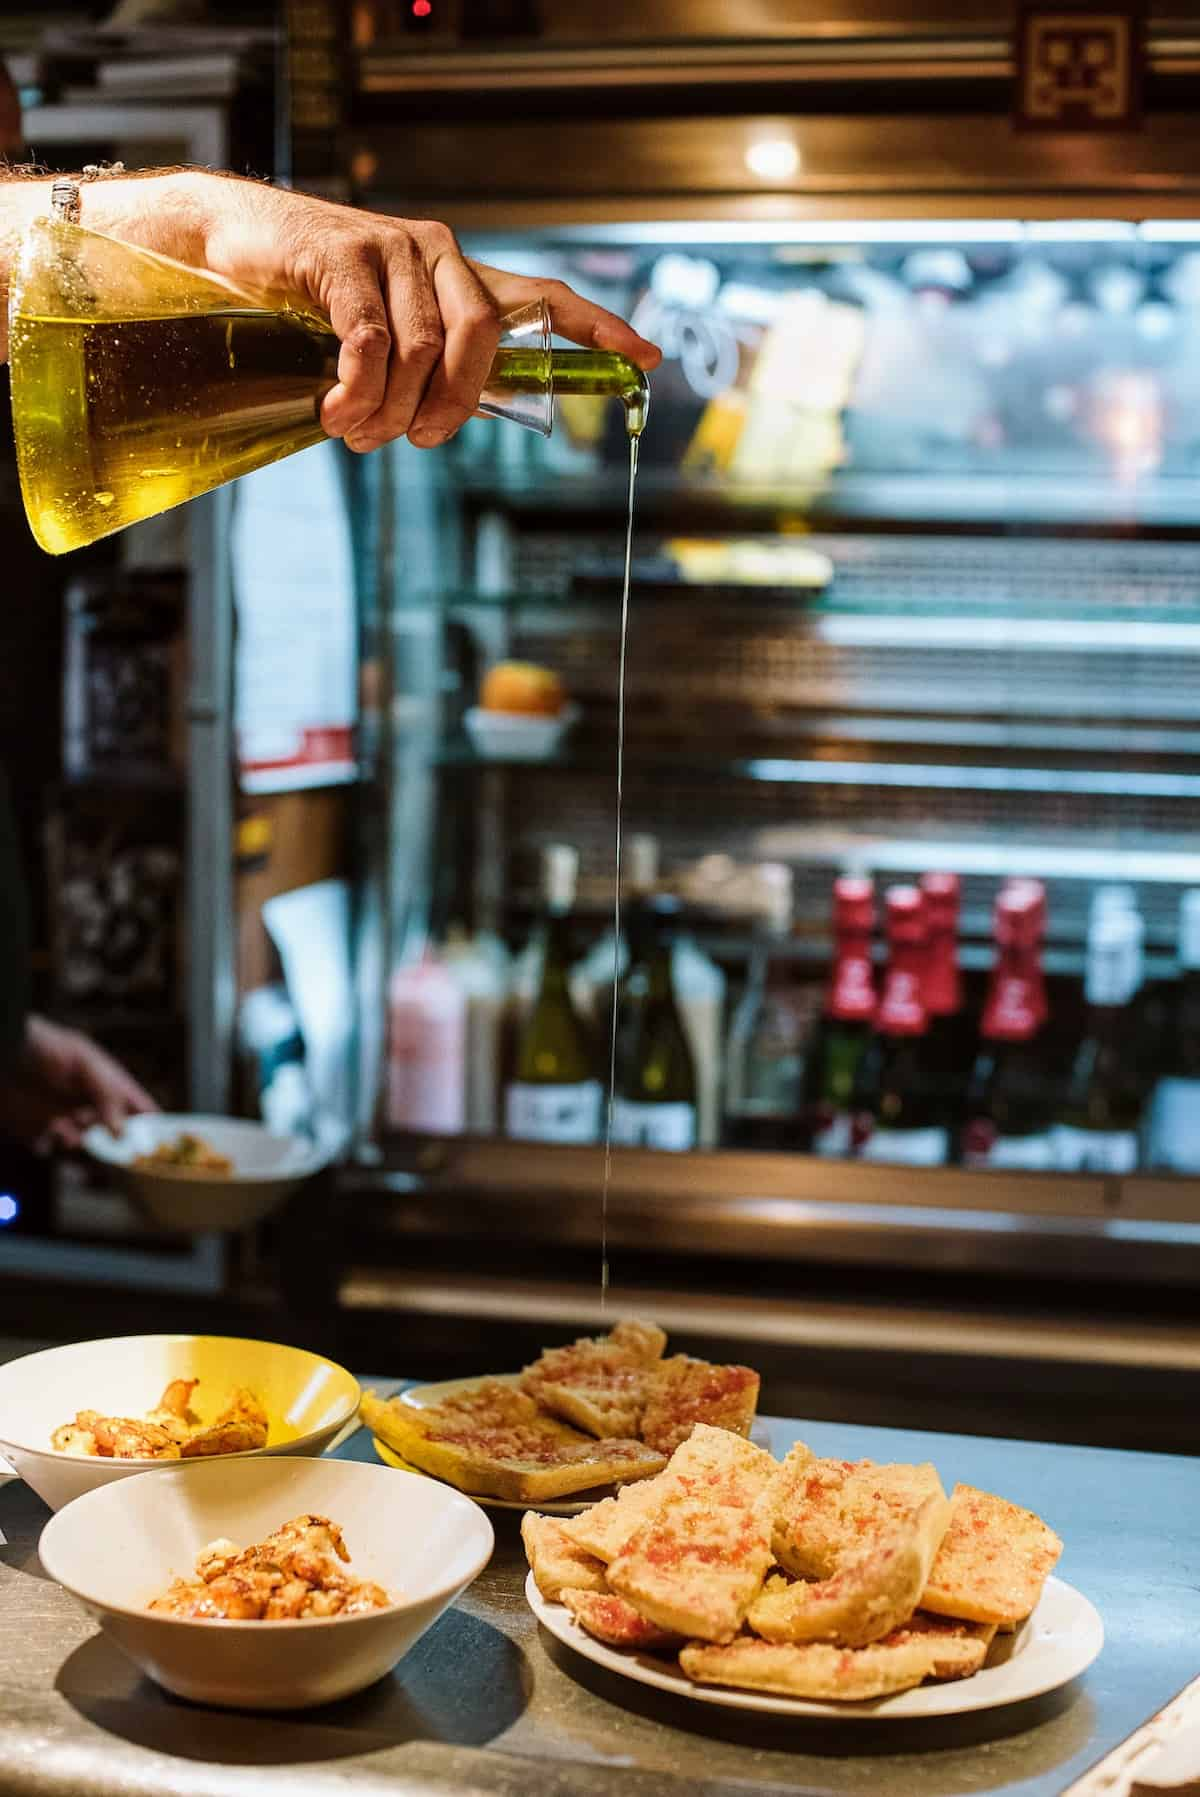 A hand pouring olive oil over a plate of toasted bread with tomato.